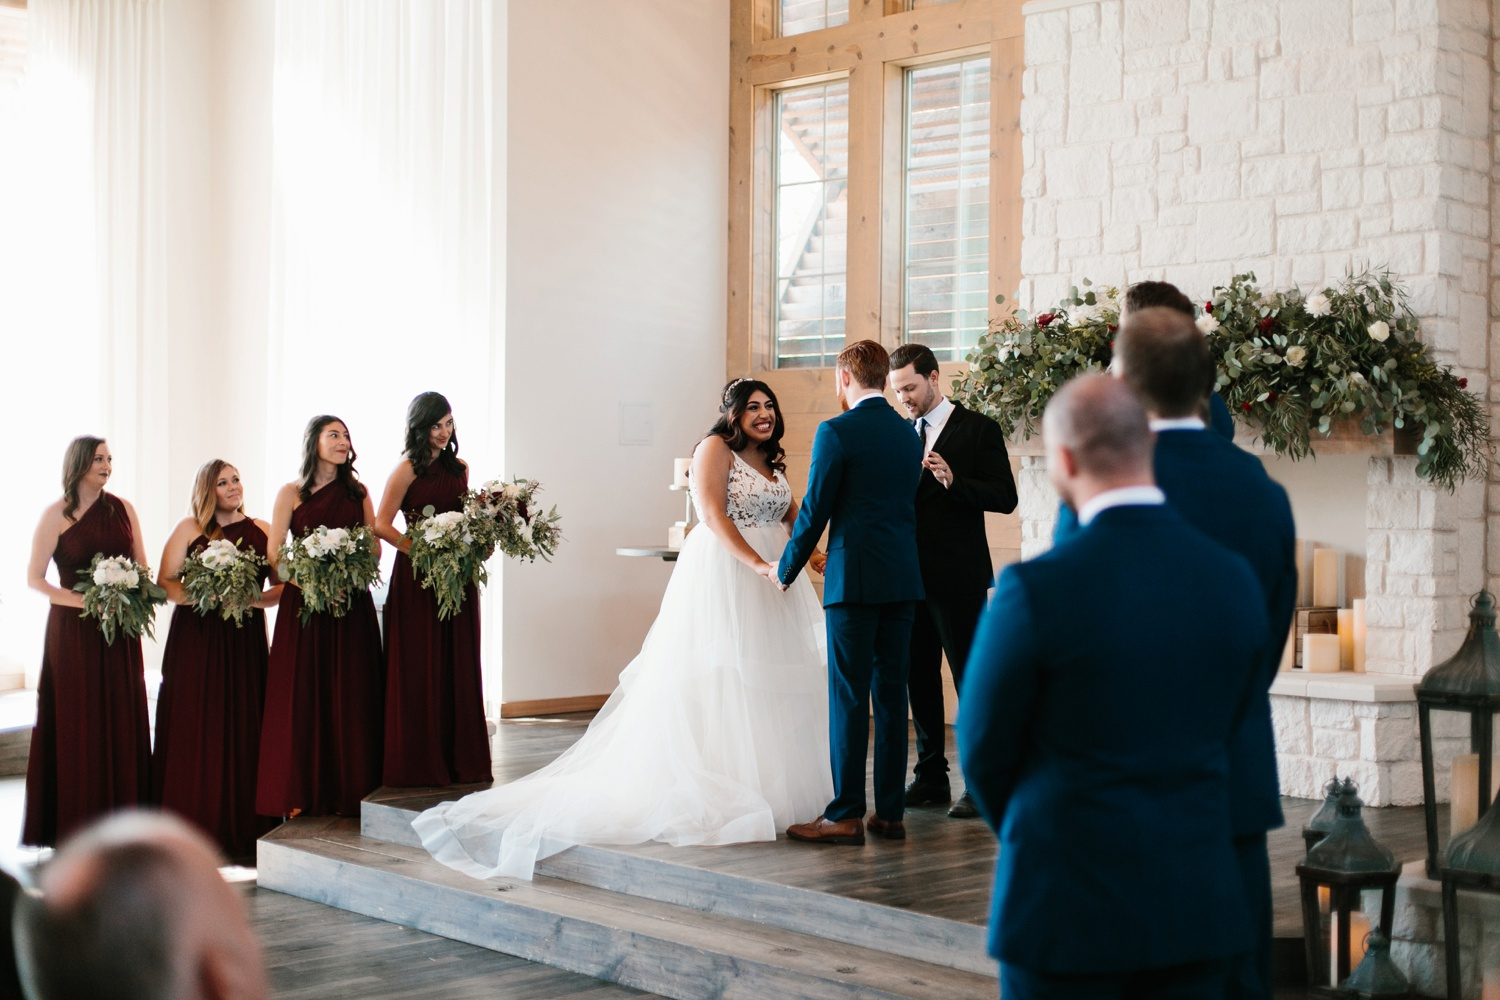 Grant + Lysette | a vibrant, deep burgundy and navy, and mixed metals wedding at Hidden Pines Chapel by North Texas Wedding Photographer Rachel Meagan Photography 087